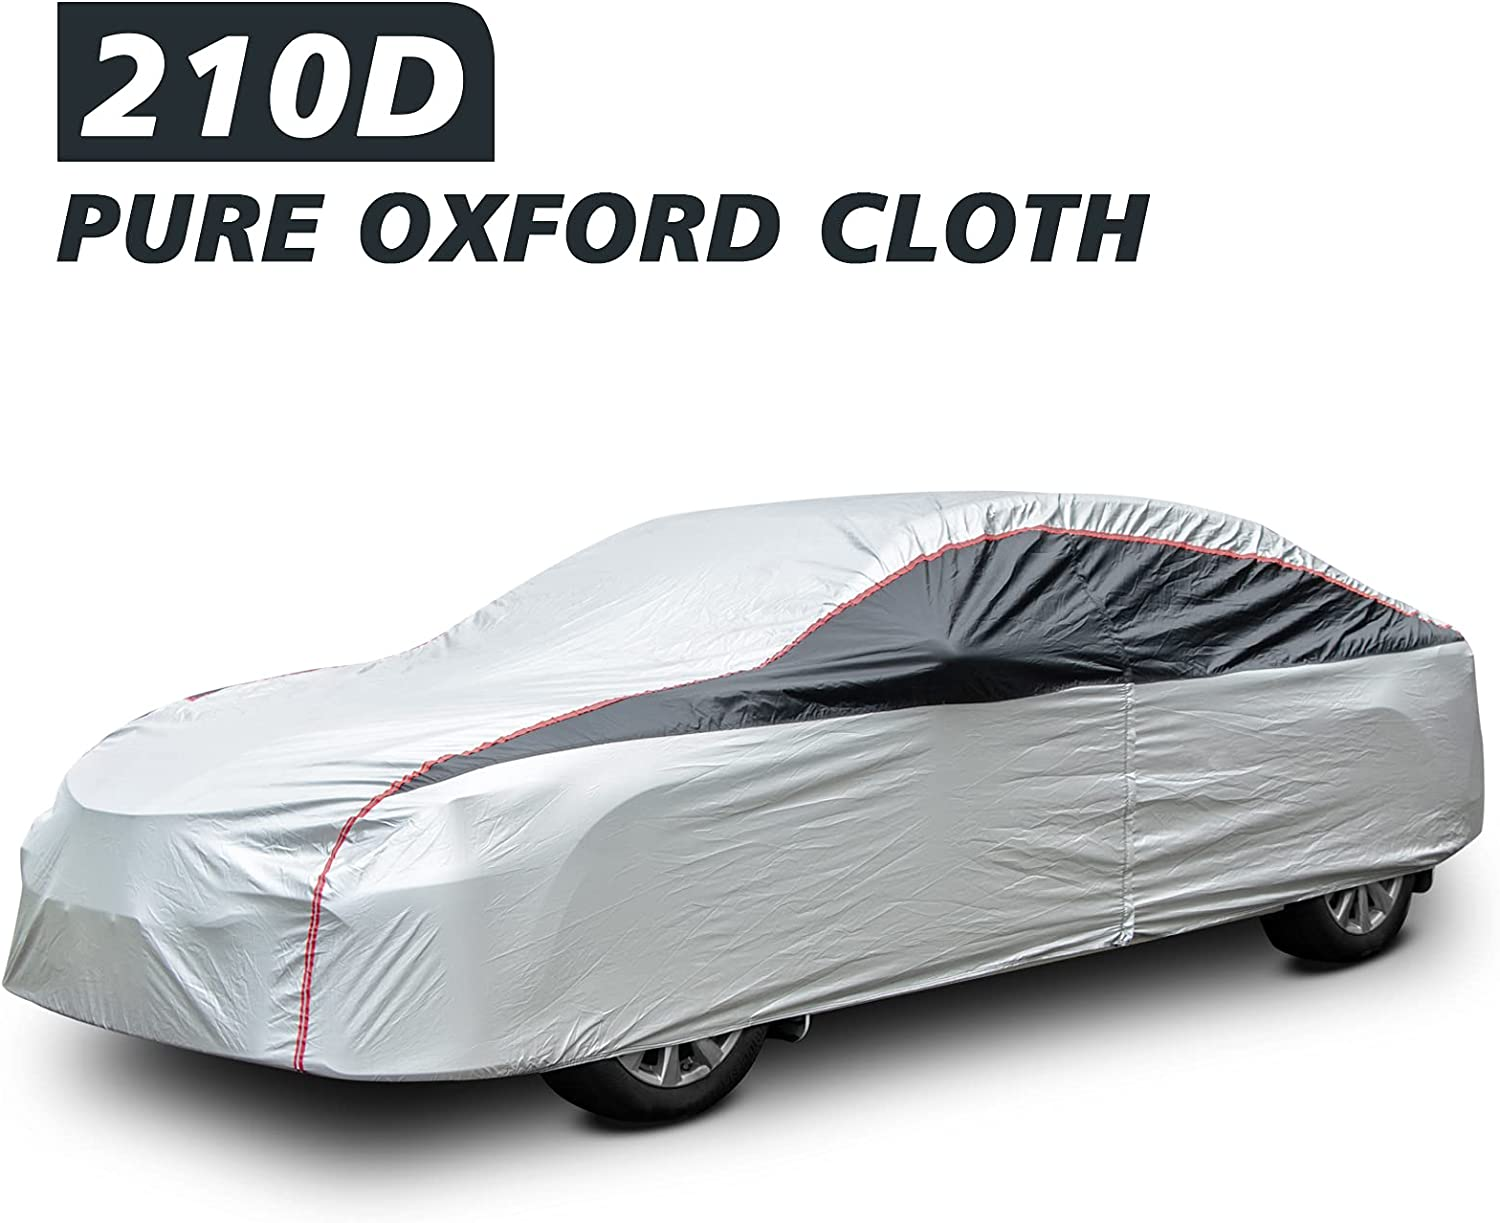 210D Oxford Car online shopping Cover Waterproof for Max 59% OFF Weather Automobiles All Fo